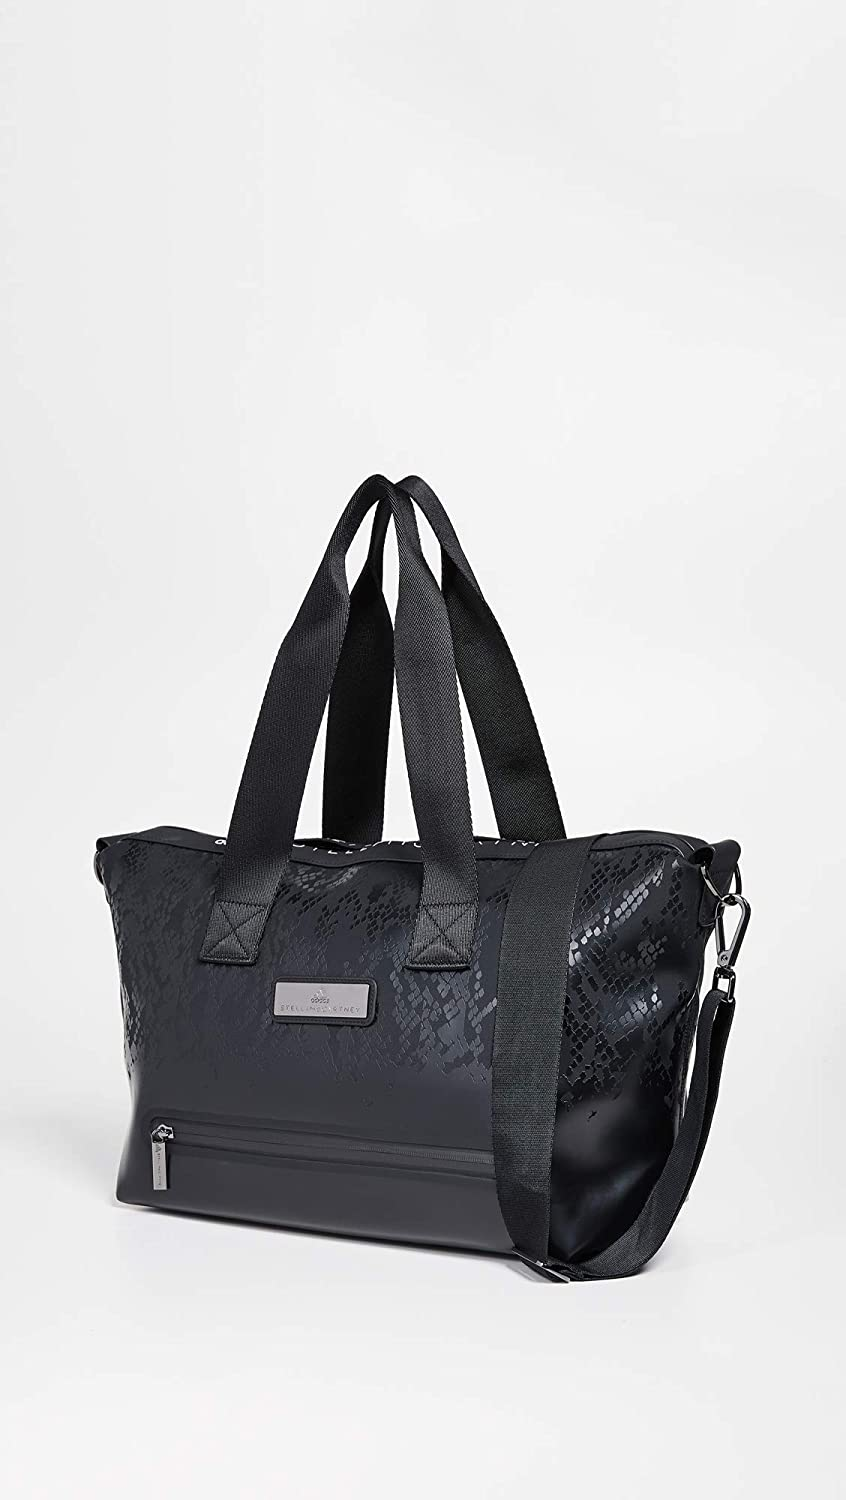 b8a132a494adf Amazon.com: adidas by Stella McCartney Women's Studio Bag Tote, Black, One  Size: Shoes